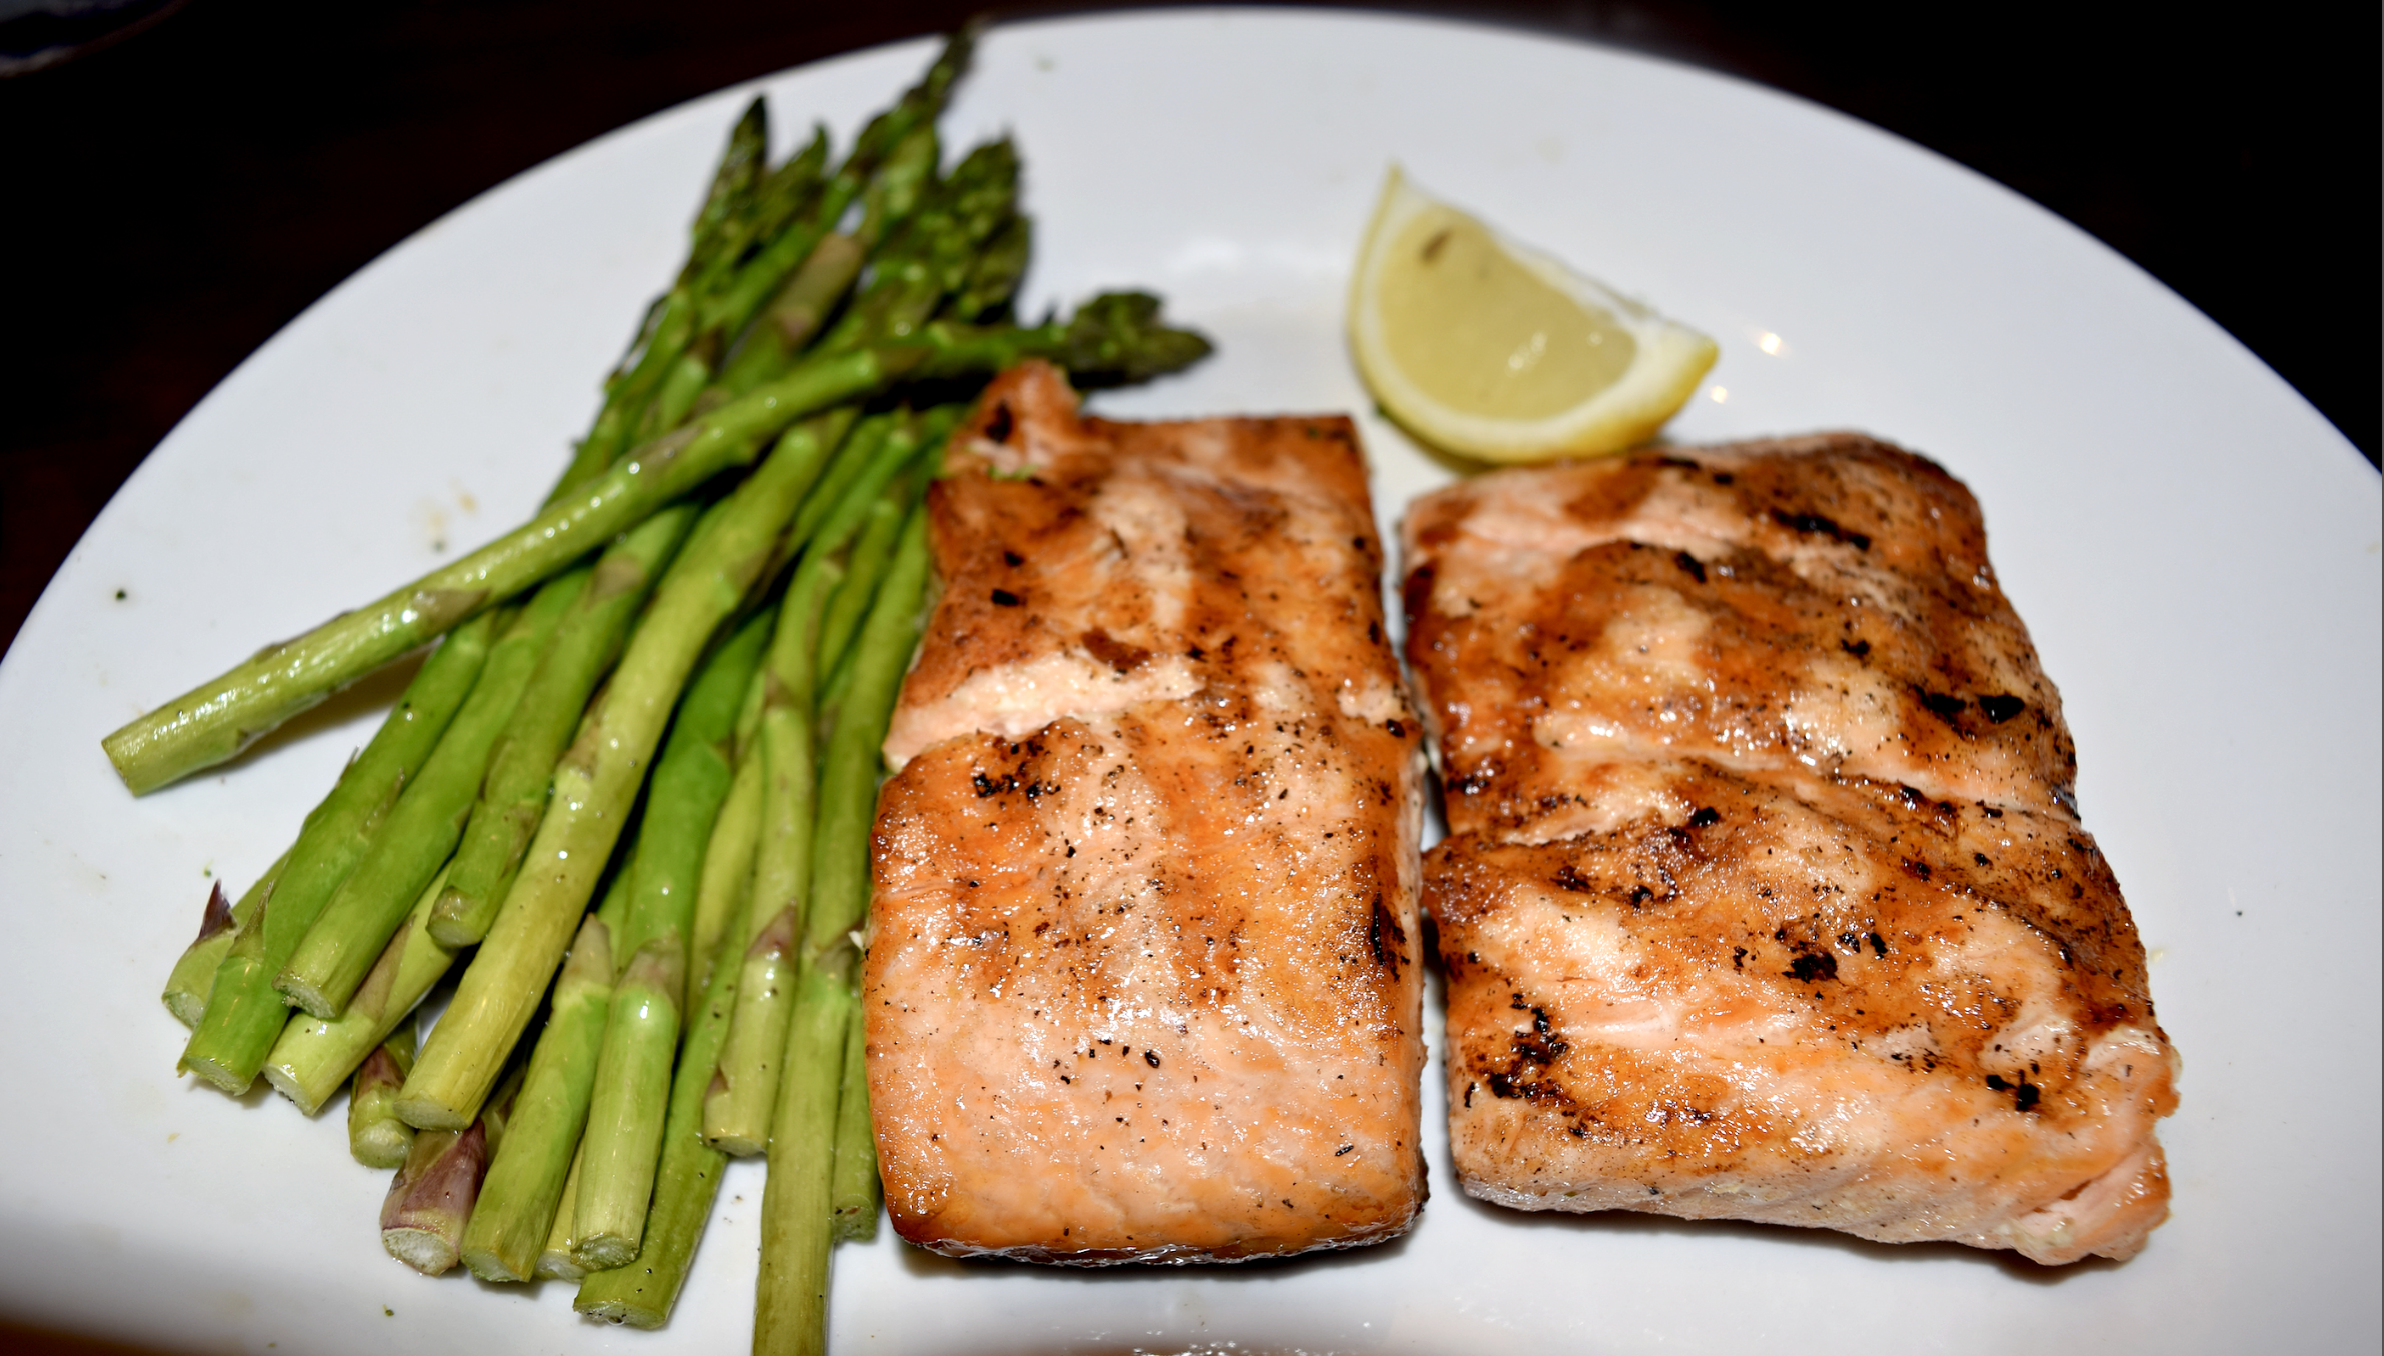 Blackened salmon with grilled asparagus and mashed sweet potatoes topped with chopped pecans and melted butter @ red Lobster - Manassas, Virginia